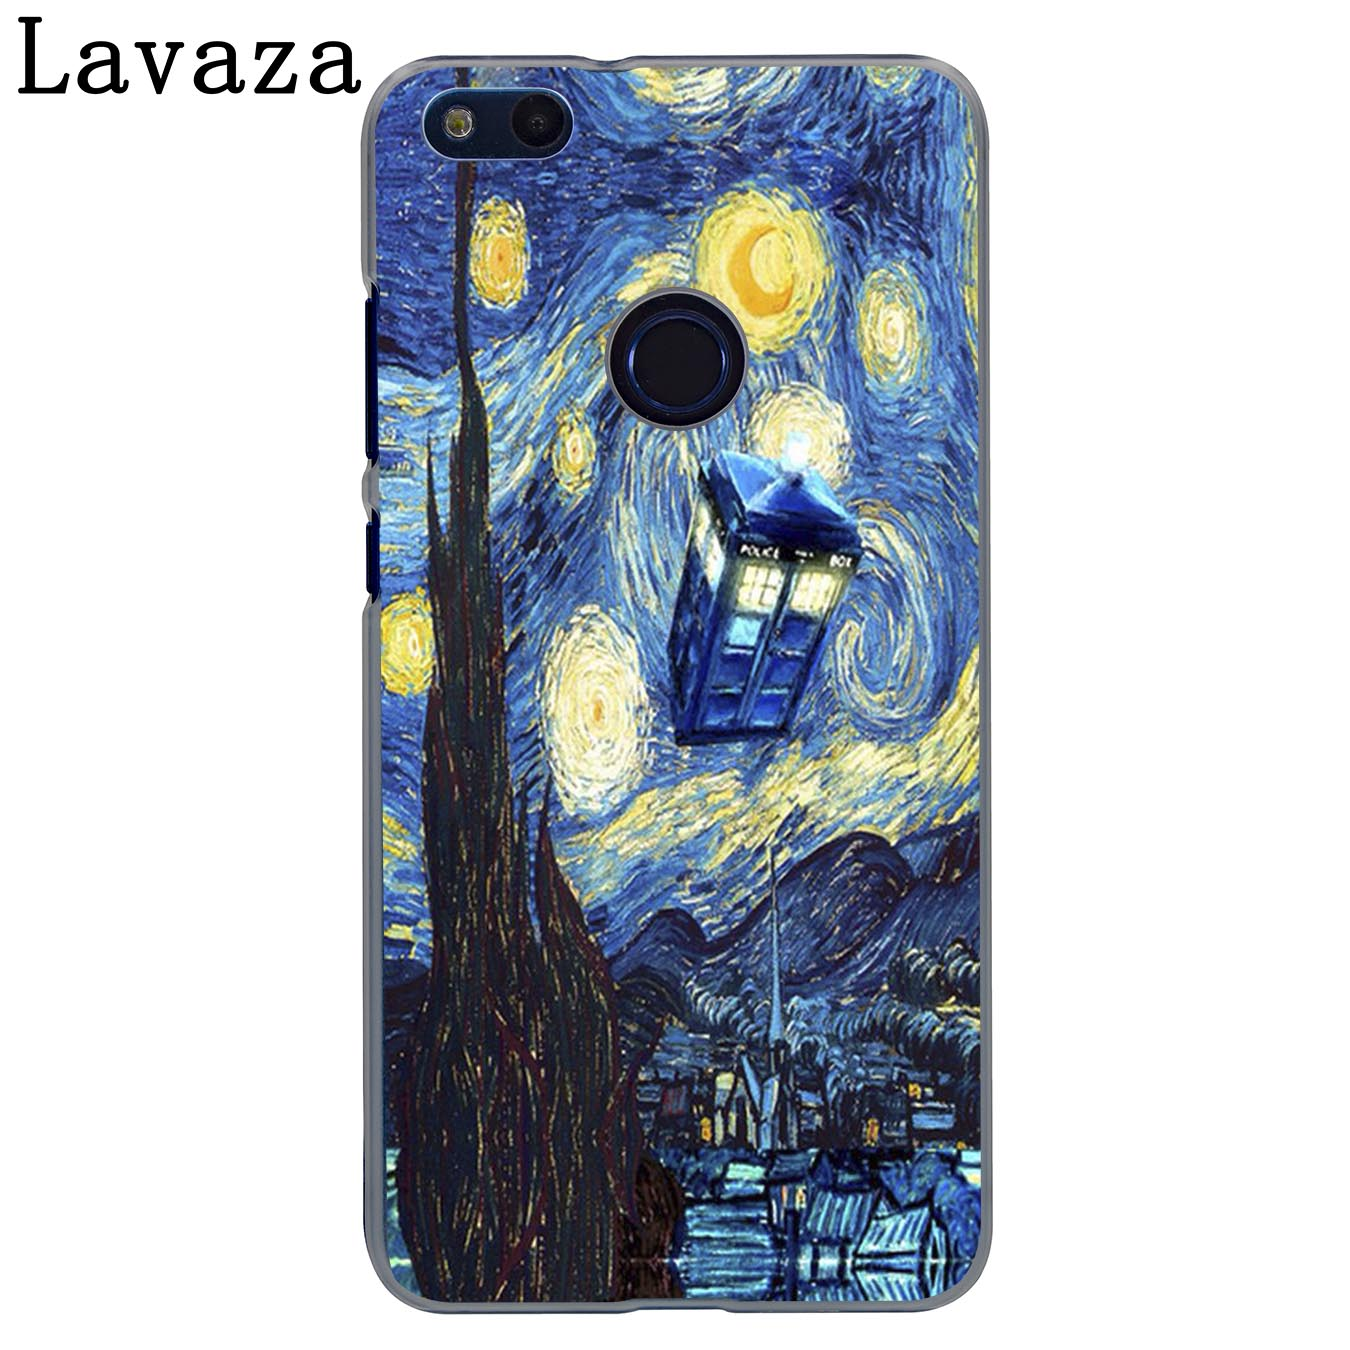 US $1 99 22% OFF|Lavaza Tardis Box Doctor Who Phone Case for Huawei Y7 Y6  Prime Y5 Y9 2018 2017 Honor play 10 8C 8X 8 9 Lite 7C 7X 7A Pro Cover-in